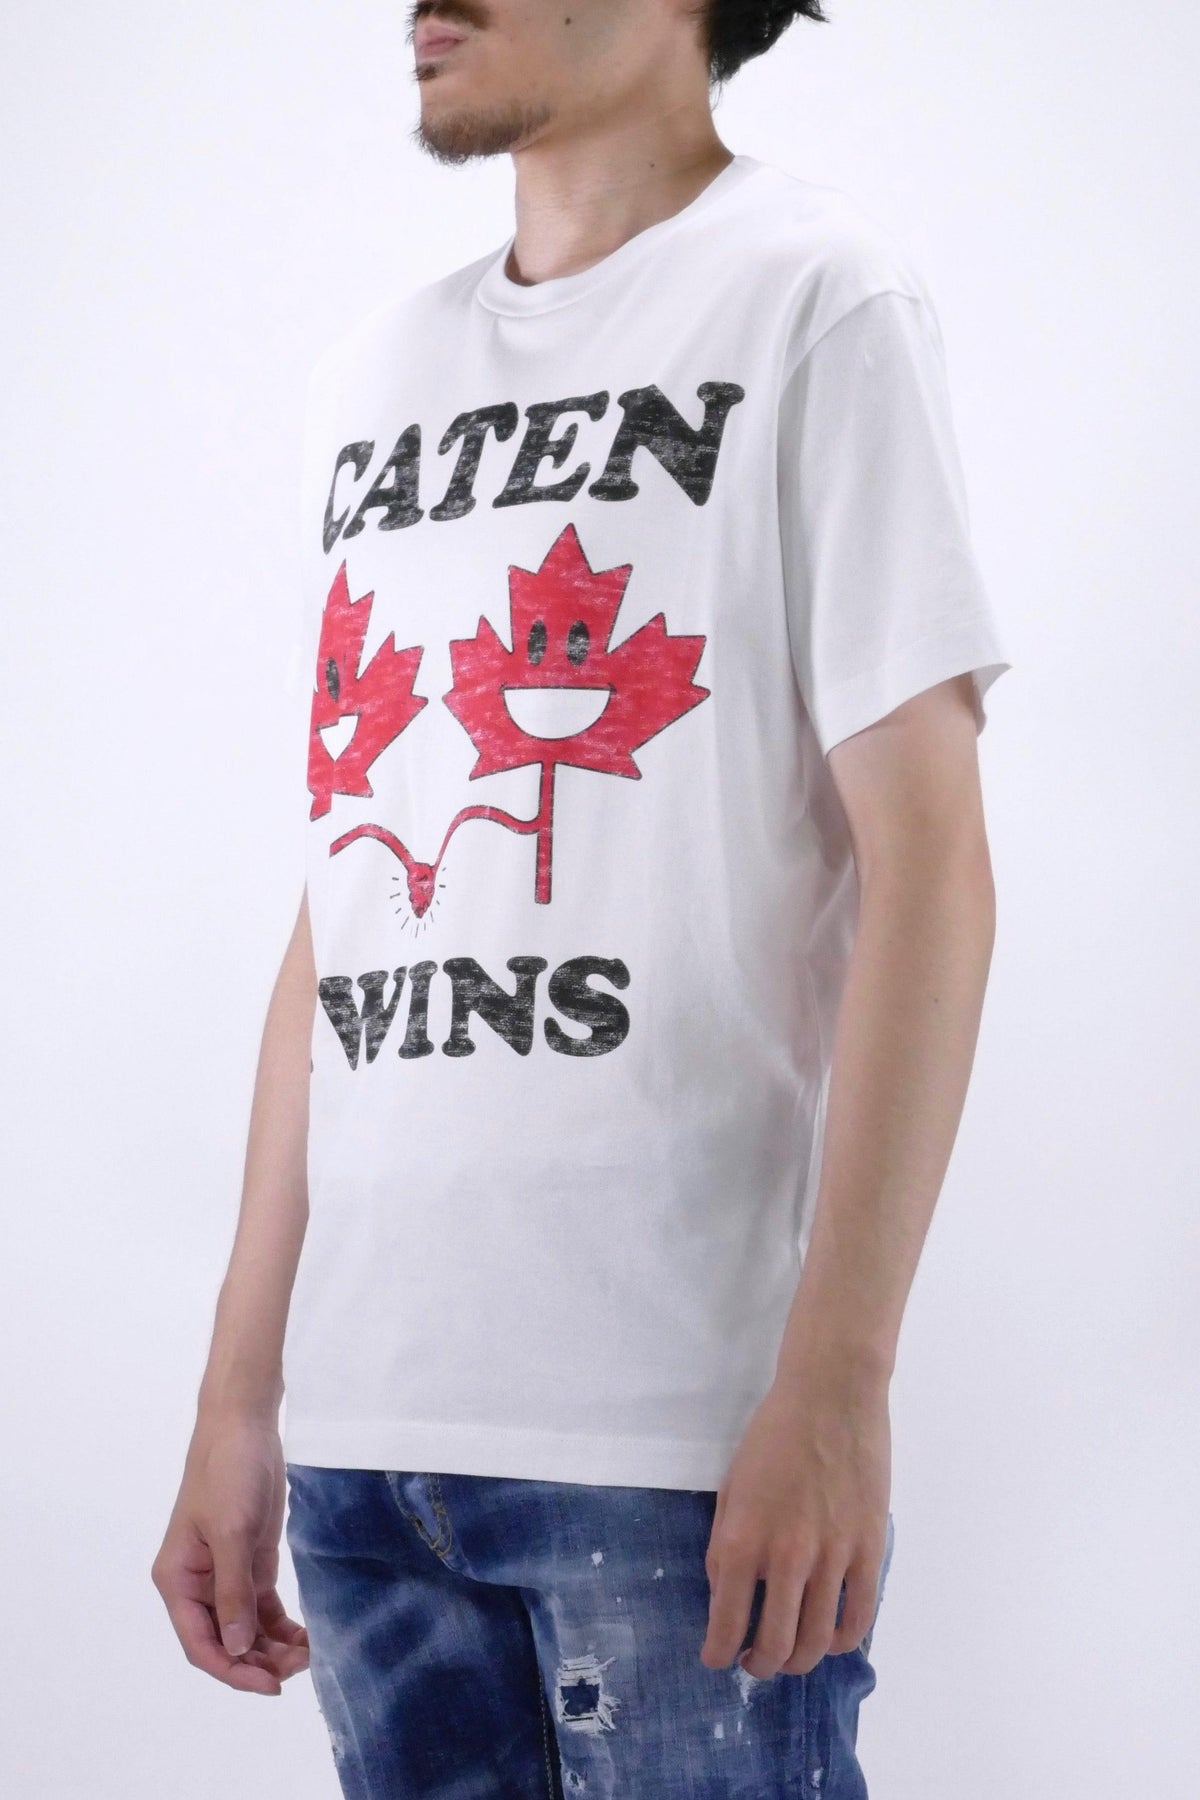 DSquared2 Caten Twins Tee White